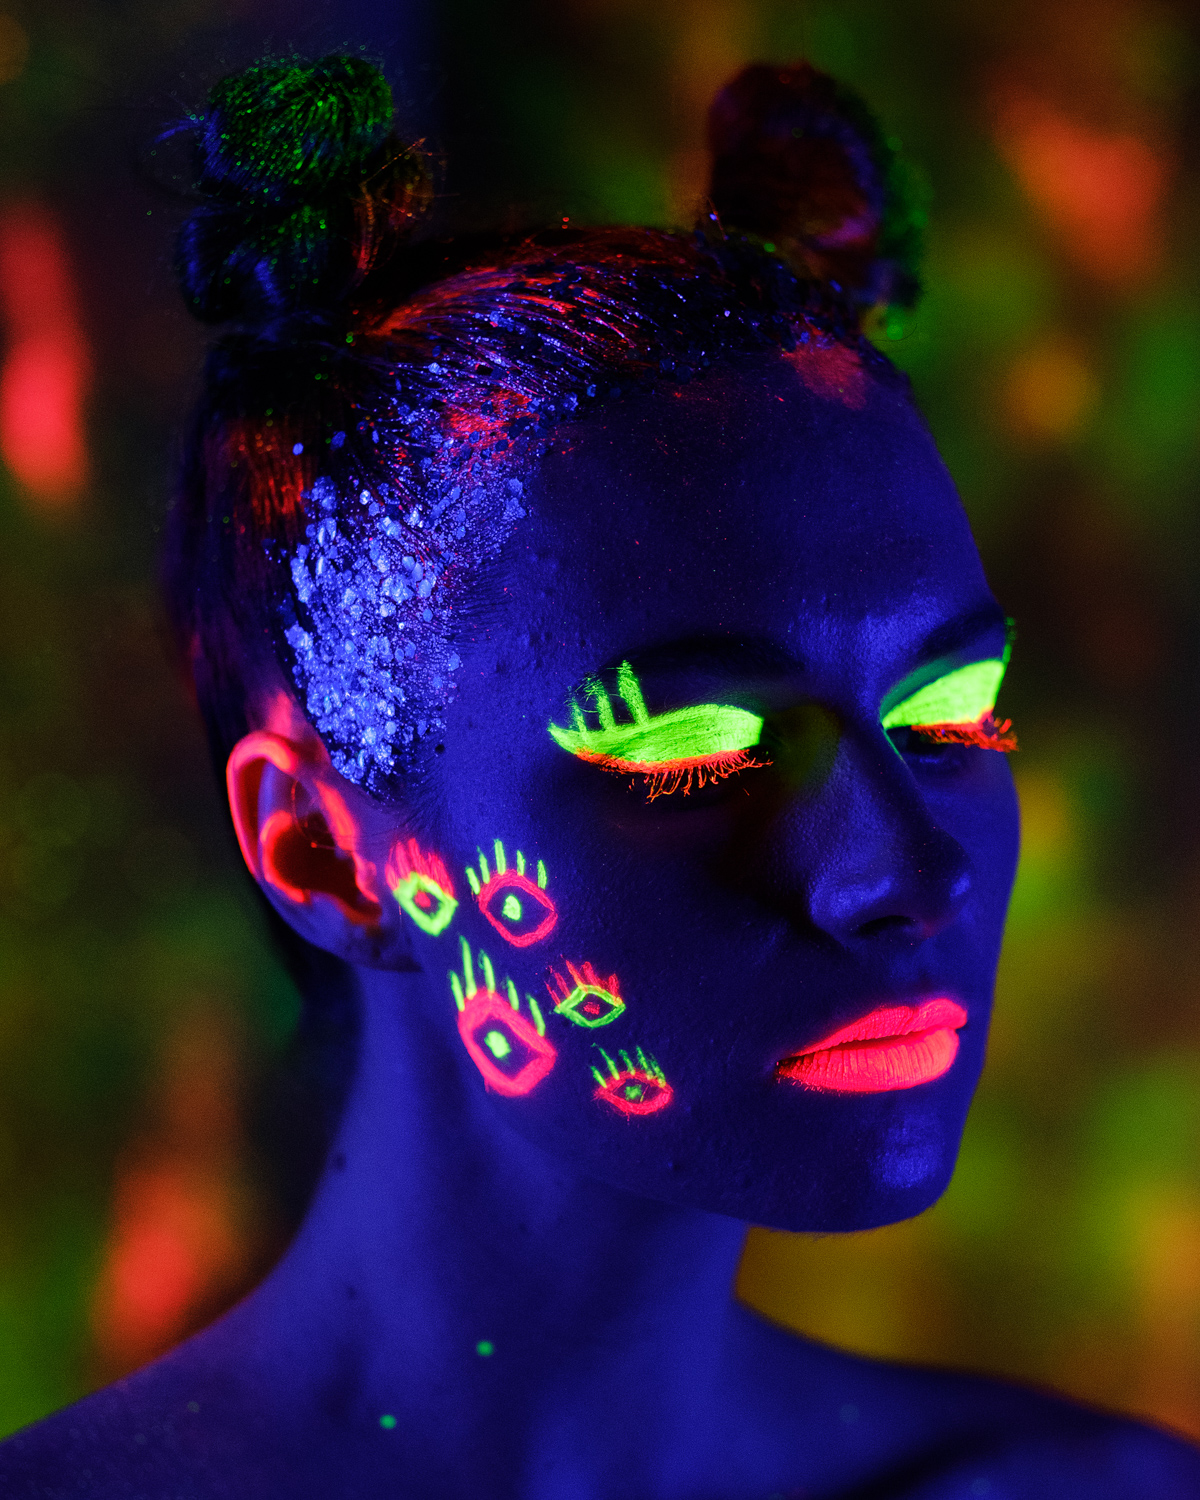 Everyone captured some gorgeous images and had such a fun night at my Neon Glow Black Light / UV Light workshop last night. Big thanks to our amazing models @berniegasm and @sasskia.model and to Jess from @jessaleemakeuphairdesign for the awesome designs and body painting.  I think I might have to run this one again in a few months.. who's keen?